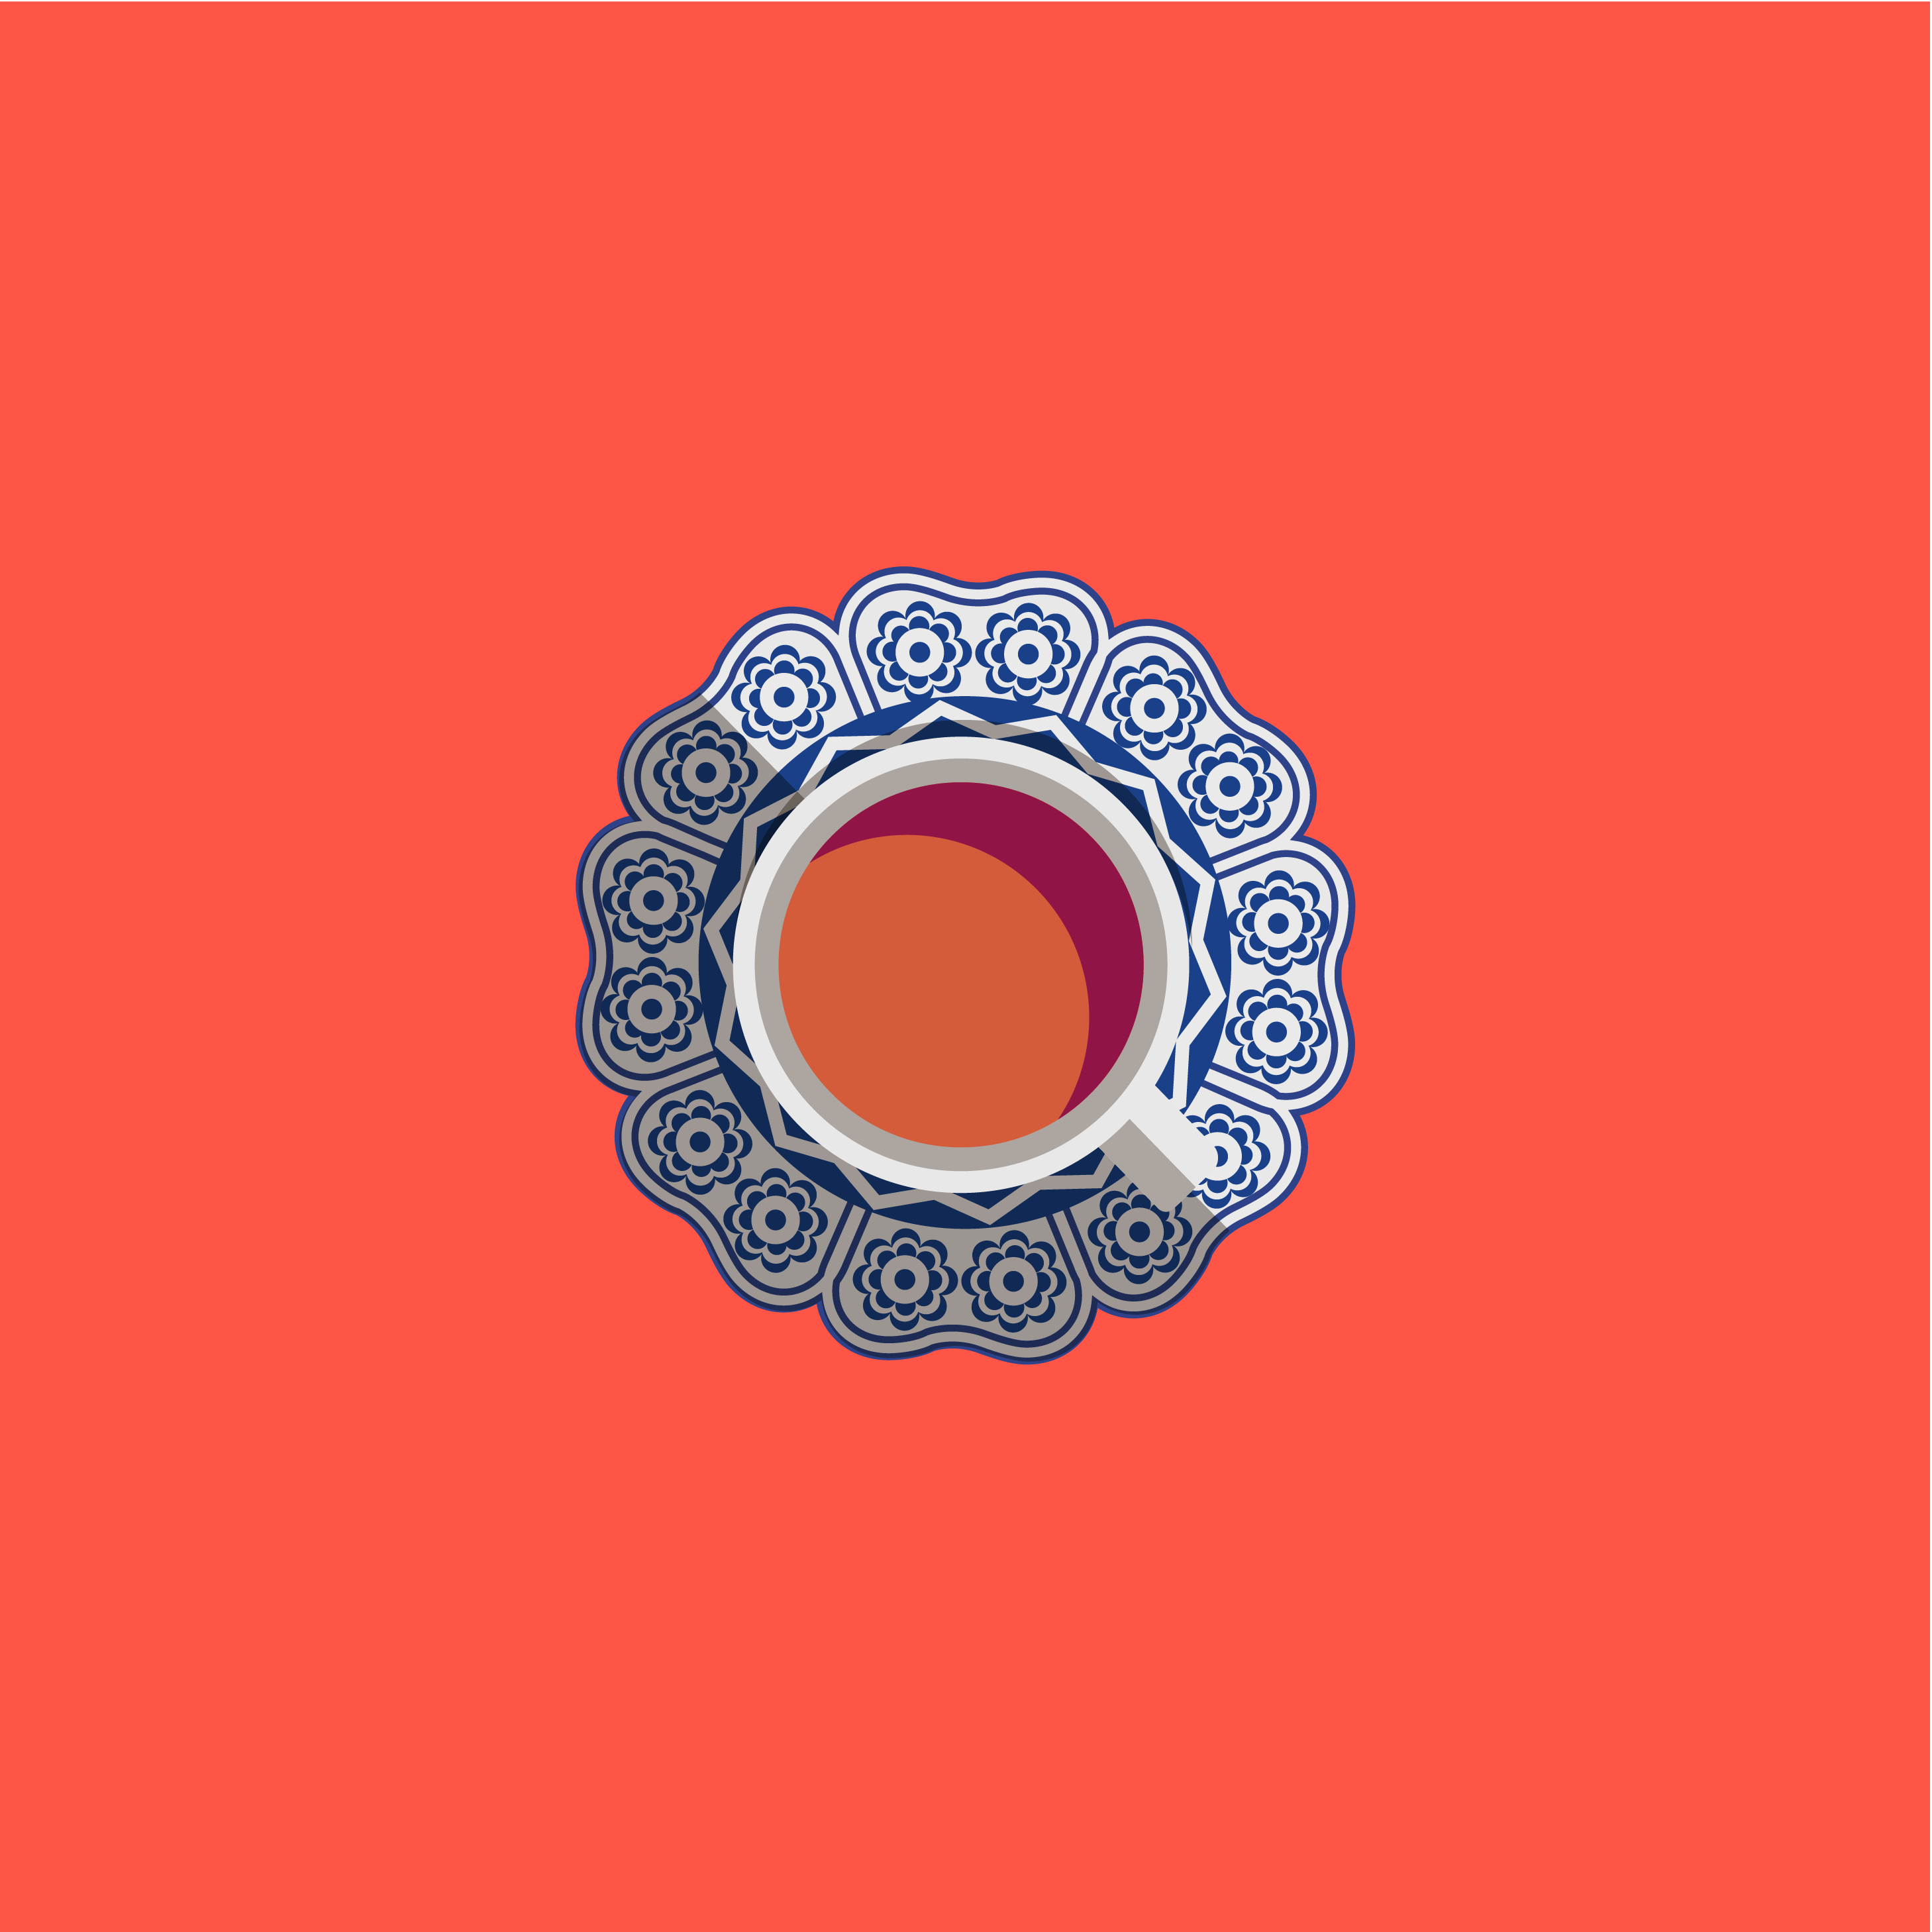 cup of tea and icon-02